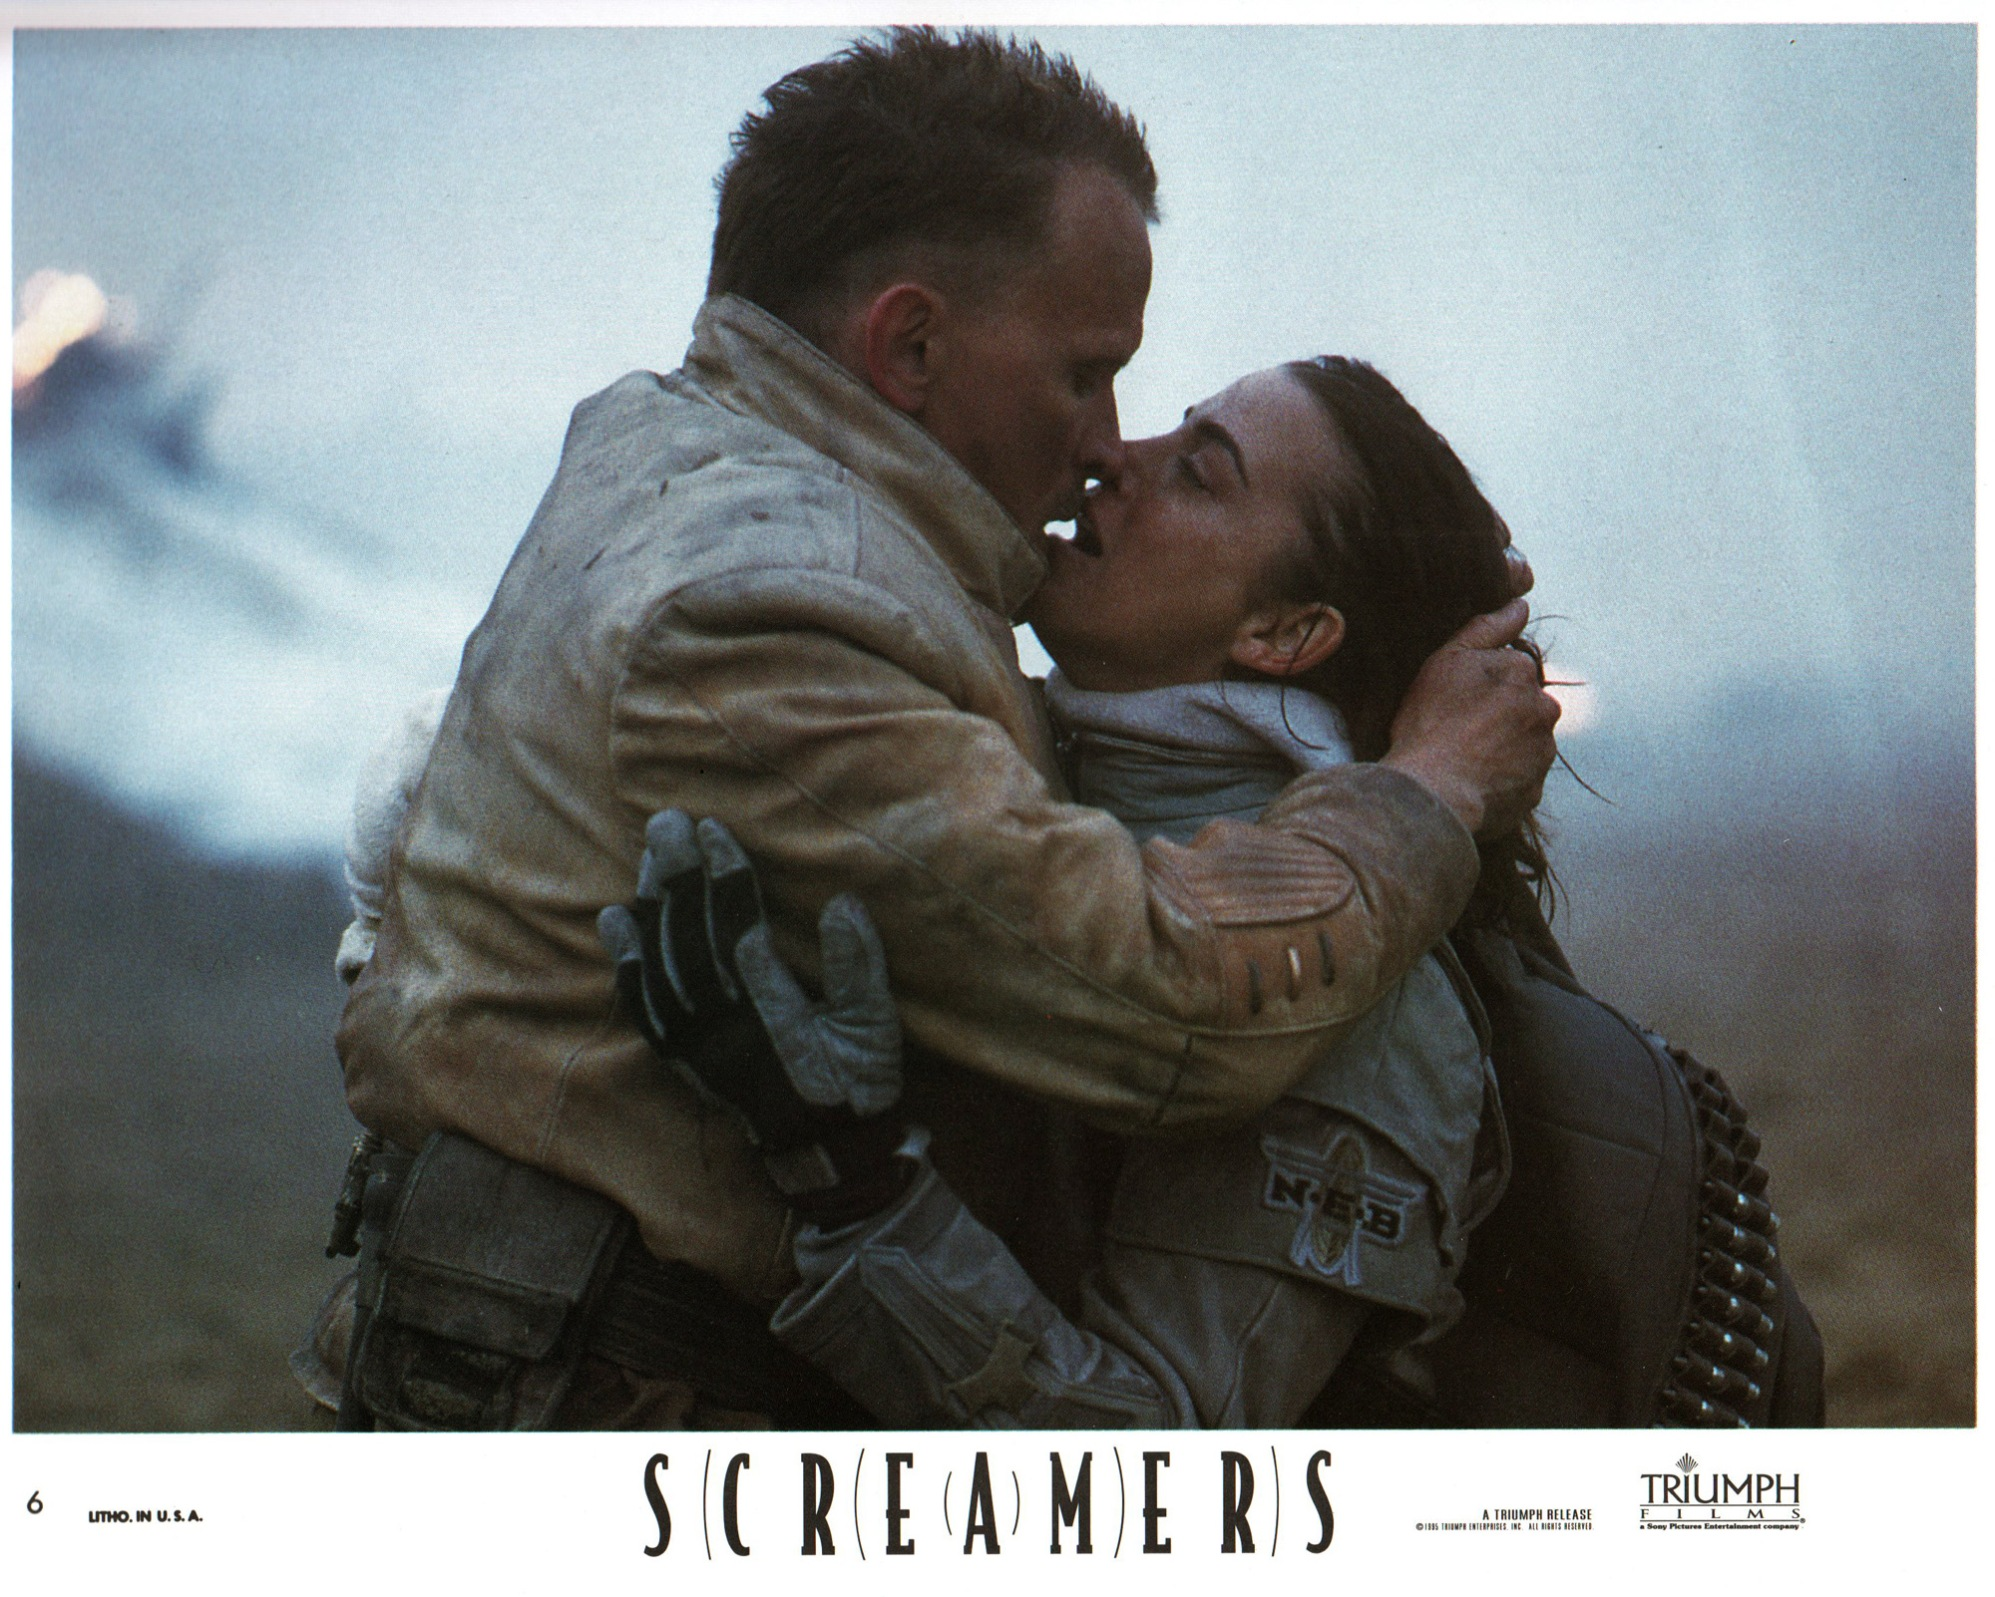 screamers-uk-6